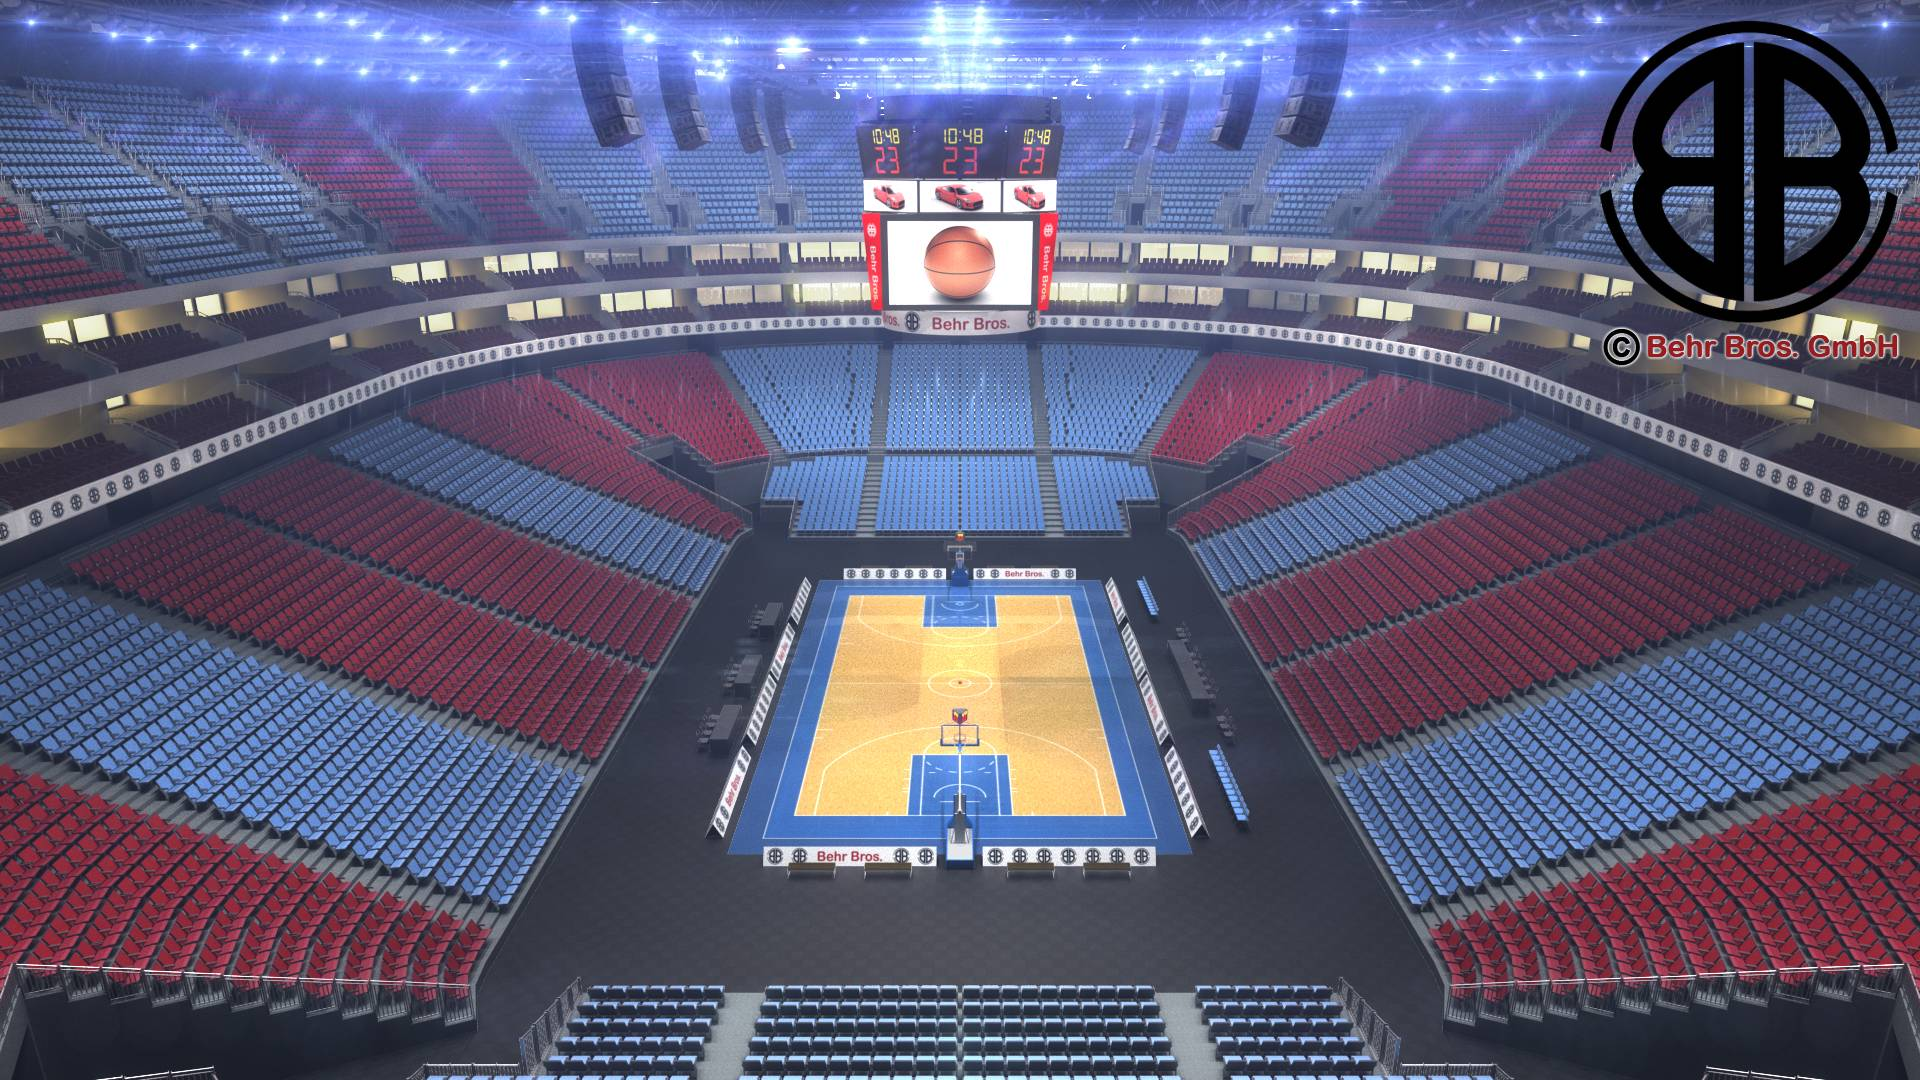 basketbal arena v2 3d model 3ds max fbx c4d lwo ma mb obj 222363